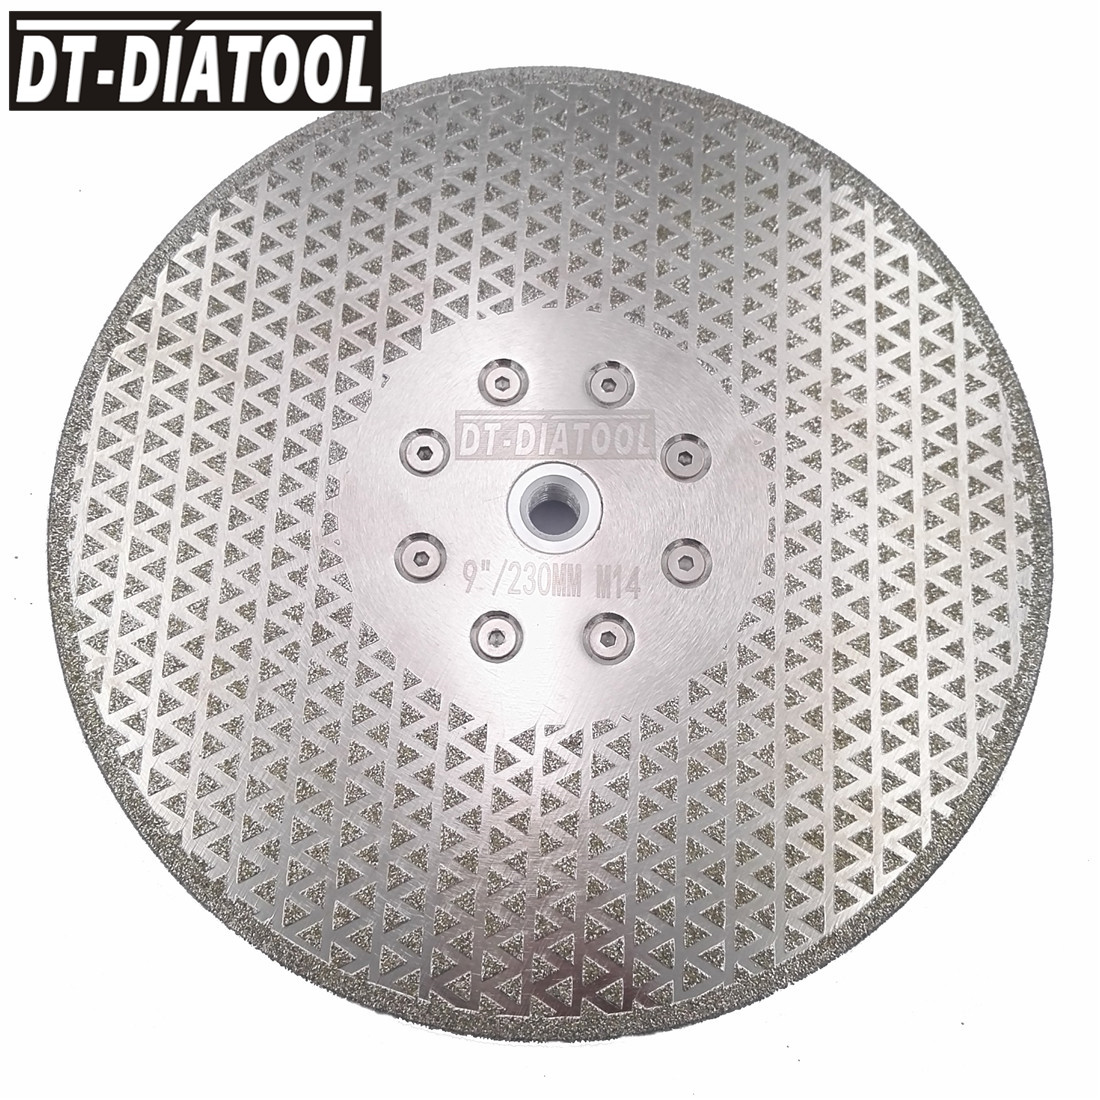 """DT DIATOOL 2pcs 9""""/230mm Electroplated Diamond Cutting Saw Blade Grinding Disc Double Sides M14 Flange for Cutting Marble Tile-in Saw Blades from Tools    2"""